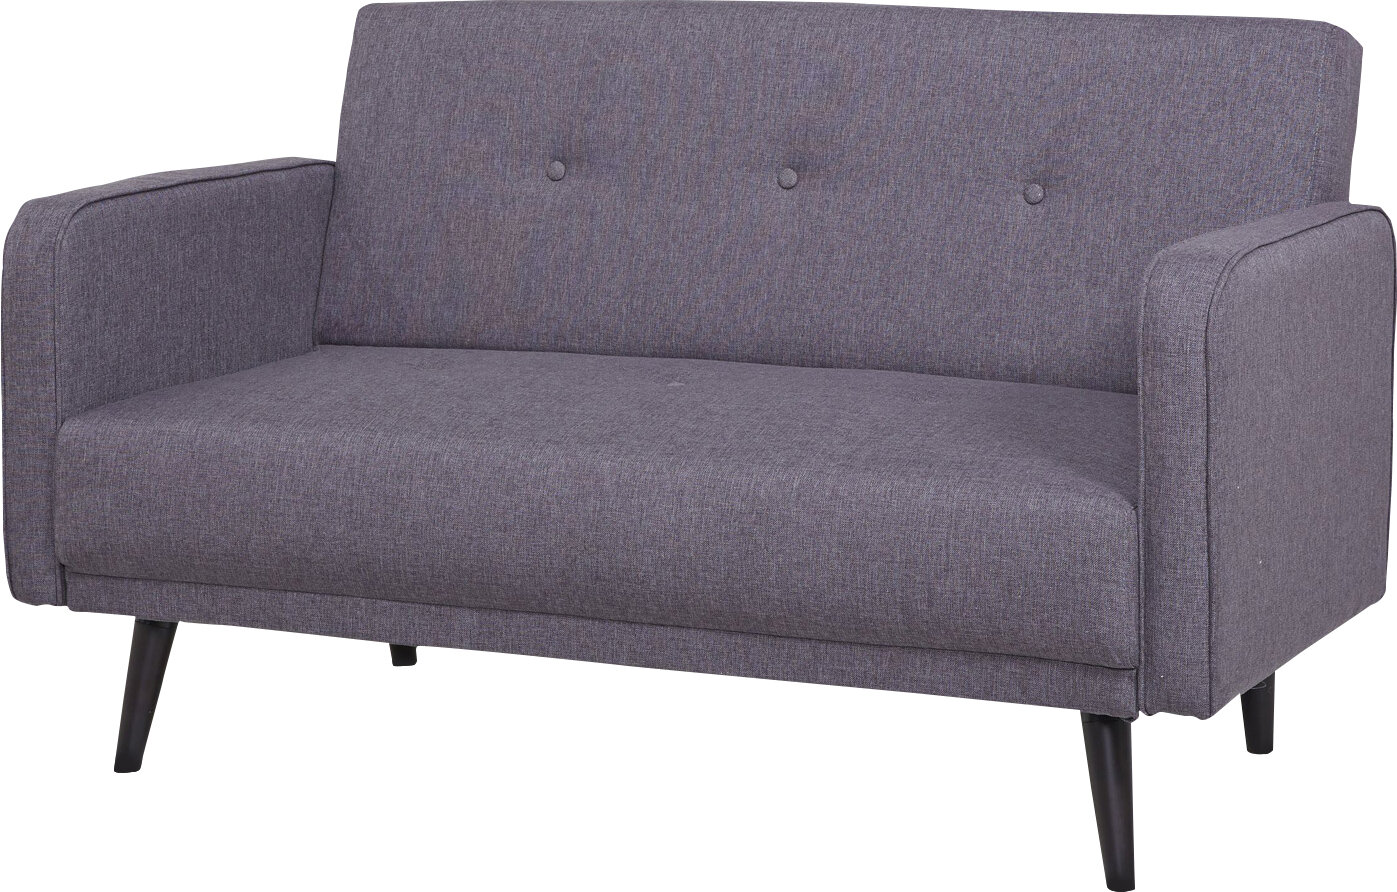 modern collections loveseat light futon fabric linen g products grey tufted love mid seat sofa century sofas